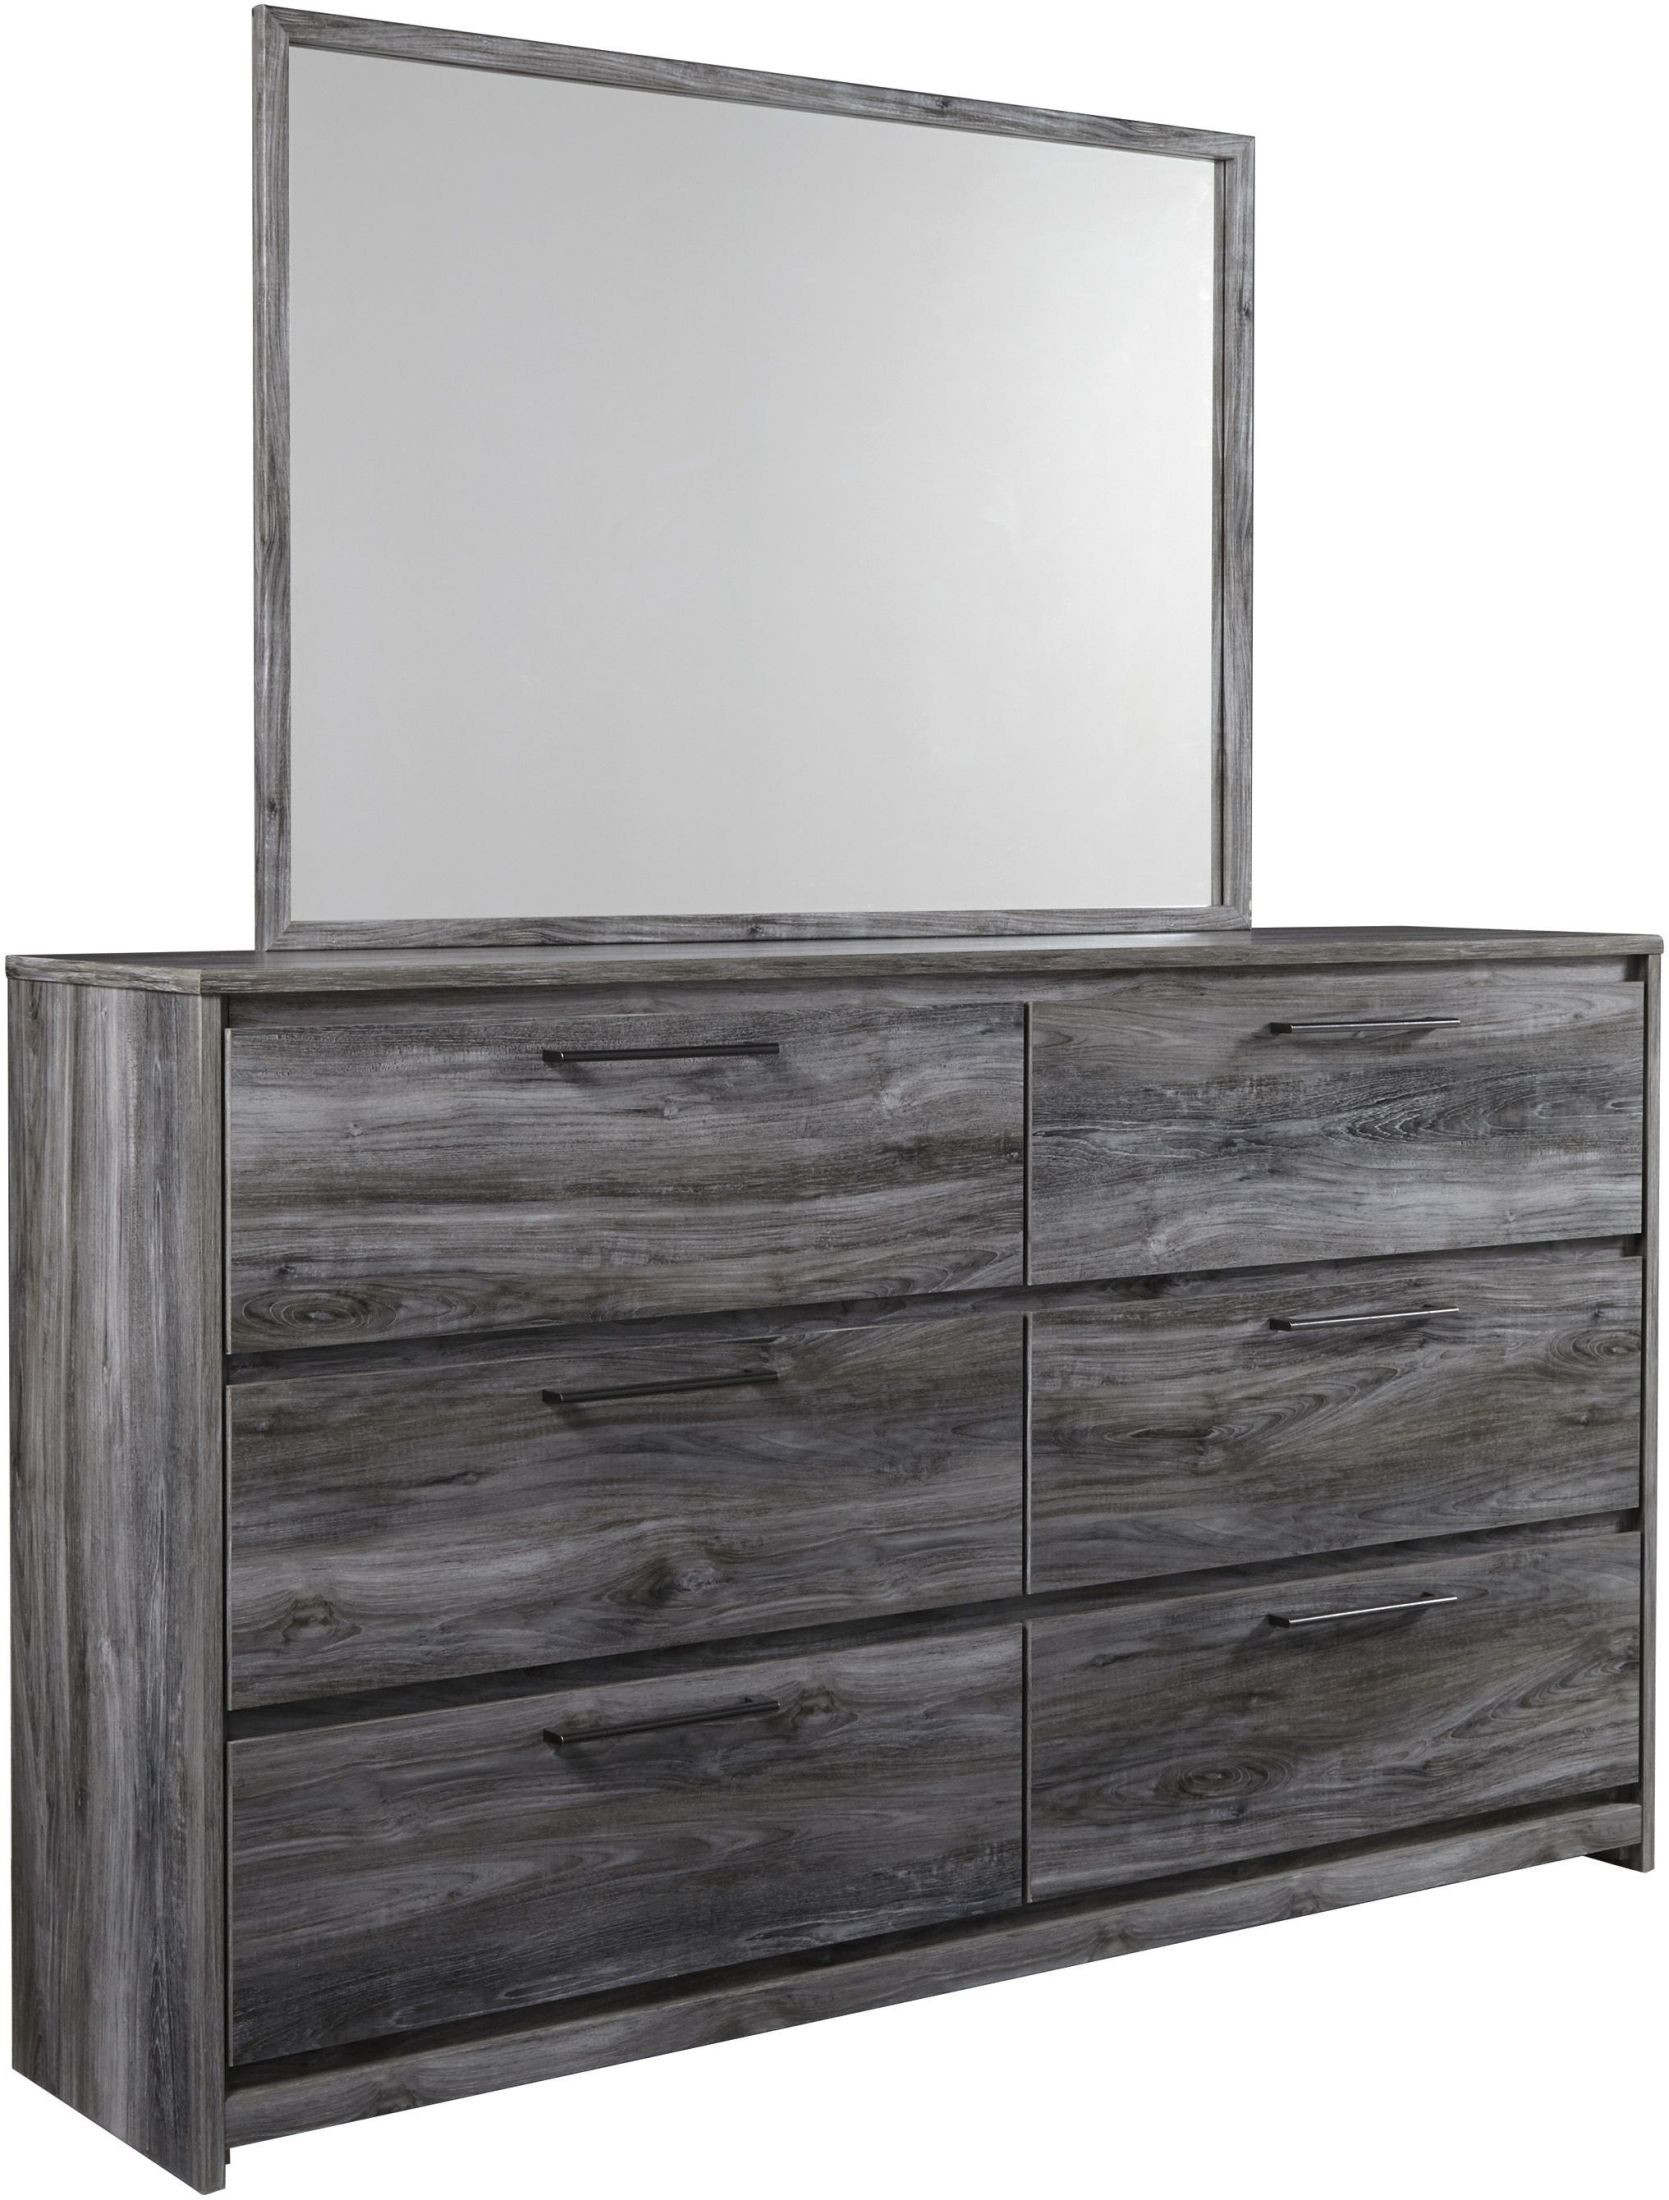 gray diy img domestic refinishing finished dresser superhero